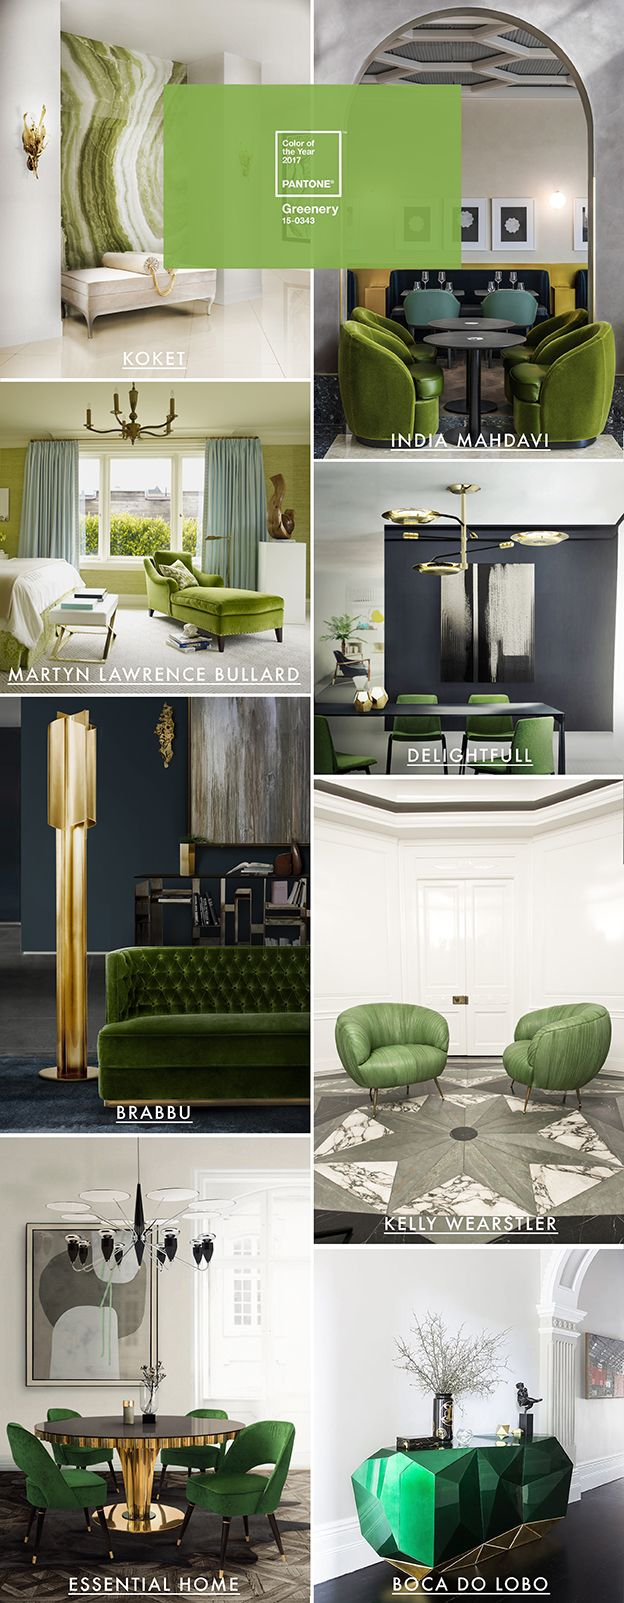 Pantone Color of the year 2017 Greenery | http://inspirationdesignbooks.com/infographic/